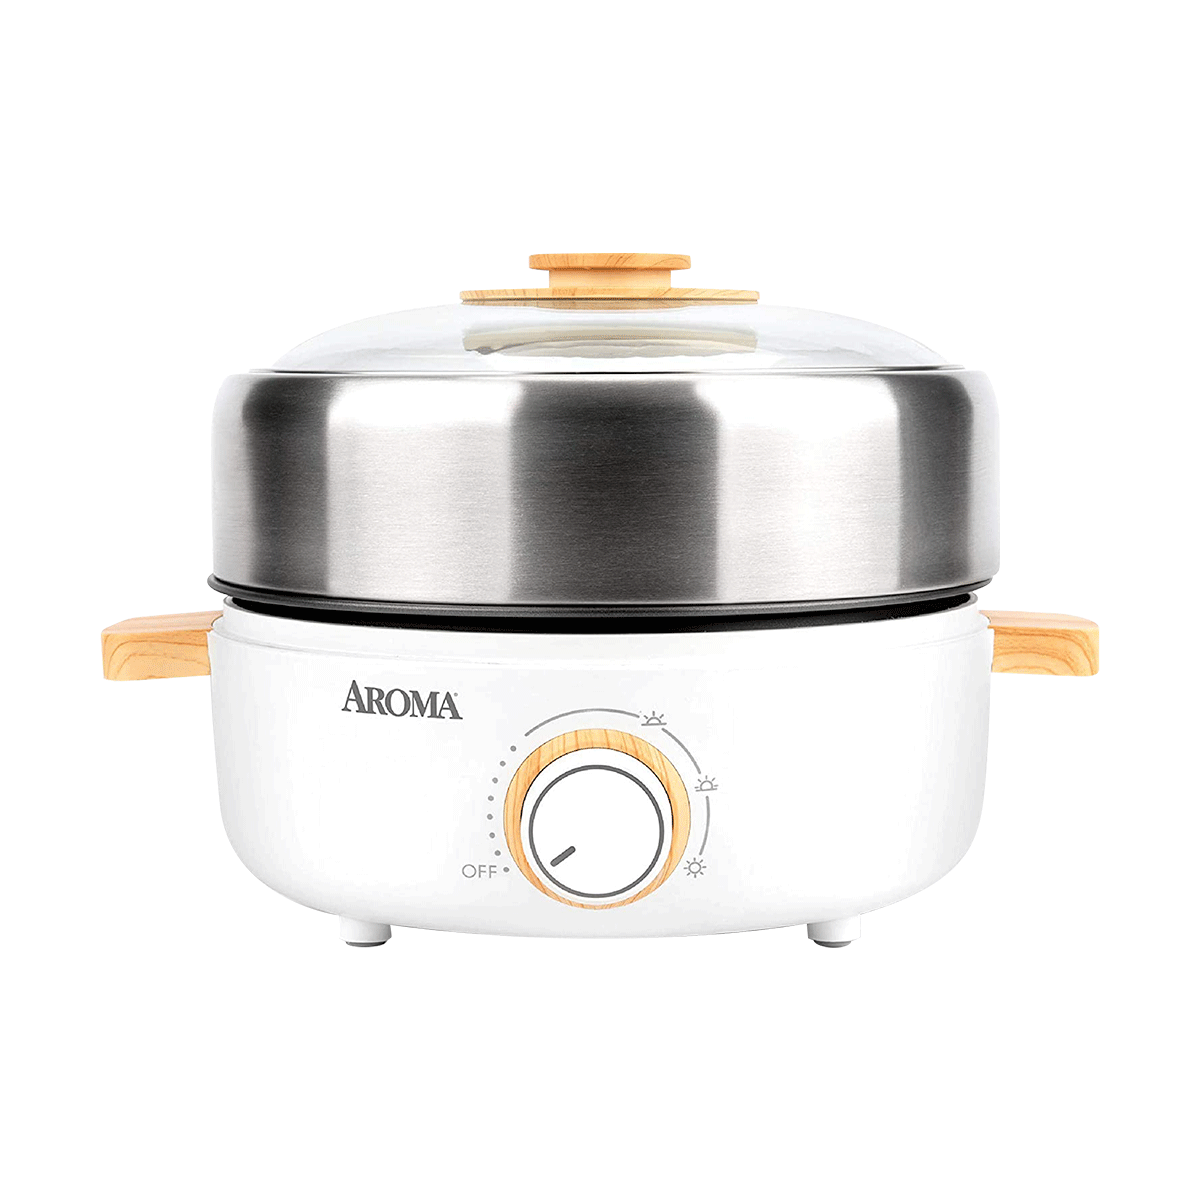 Yamibuy.com:Customer reviews:[NEW] Aroma Housewares AMC-130 Whatever Pot Indoor Grill Cooking Hot Pot with Glass Lid Bamboo Handles 2.5L